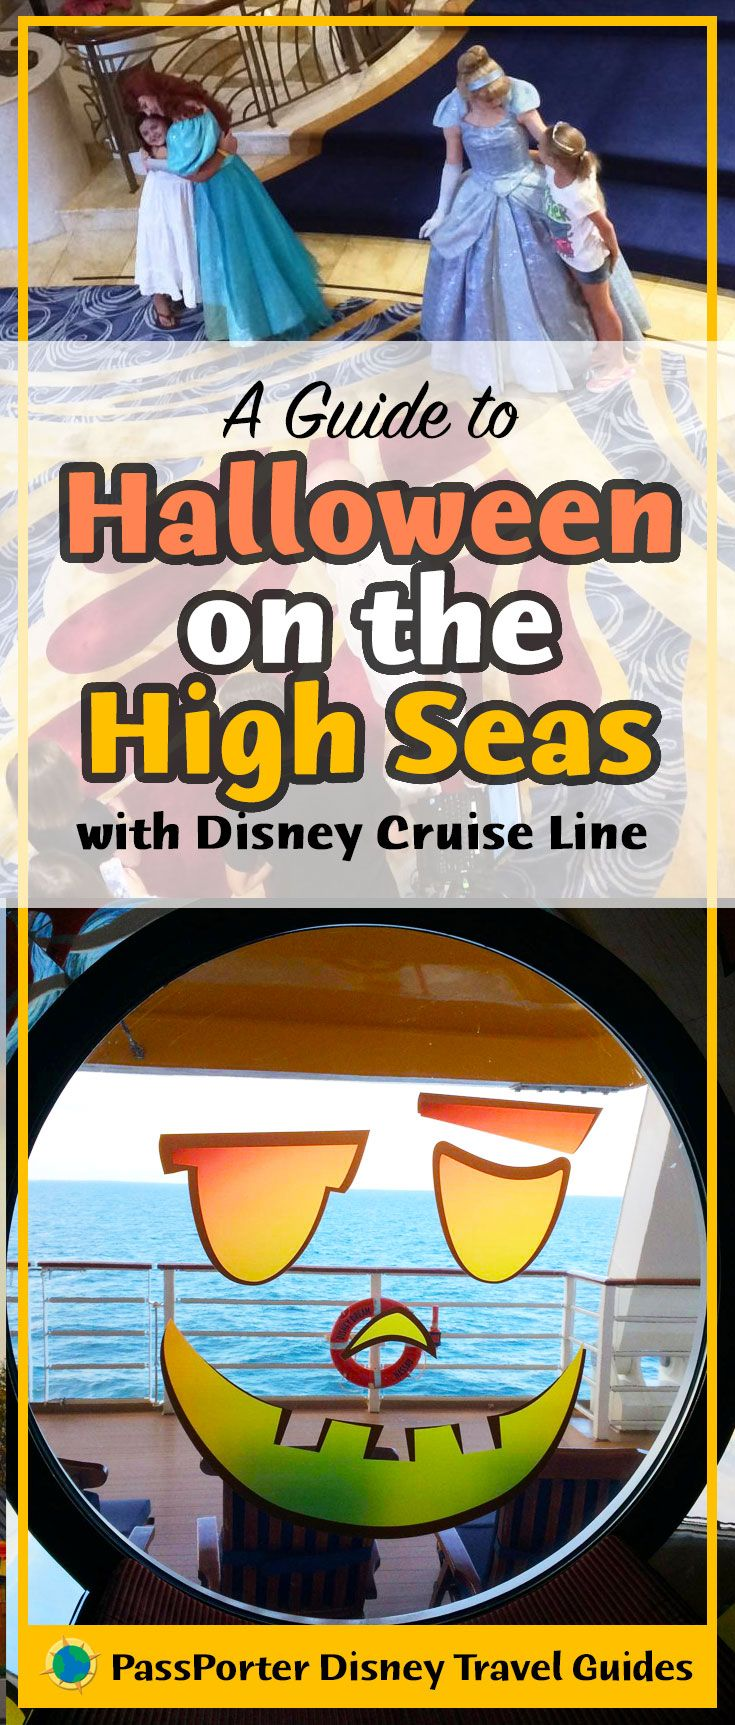 Make the most of your Halloween cruise on the Disney Cruise Line | PassPorter.com